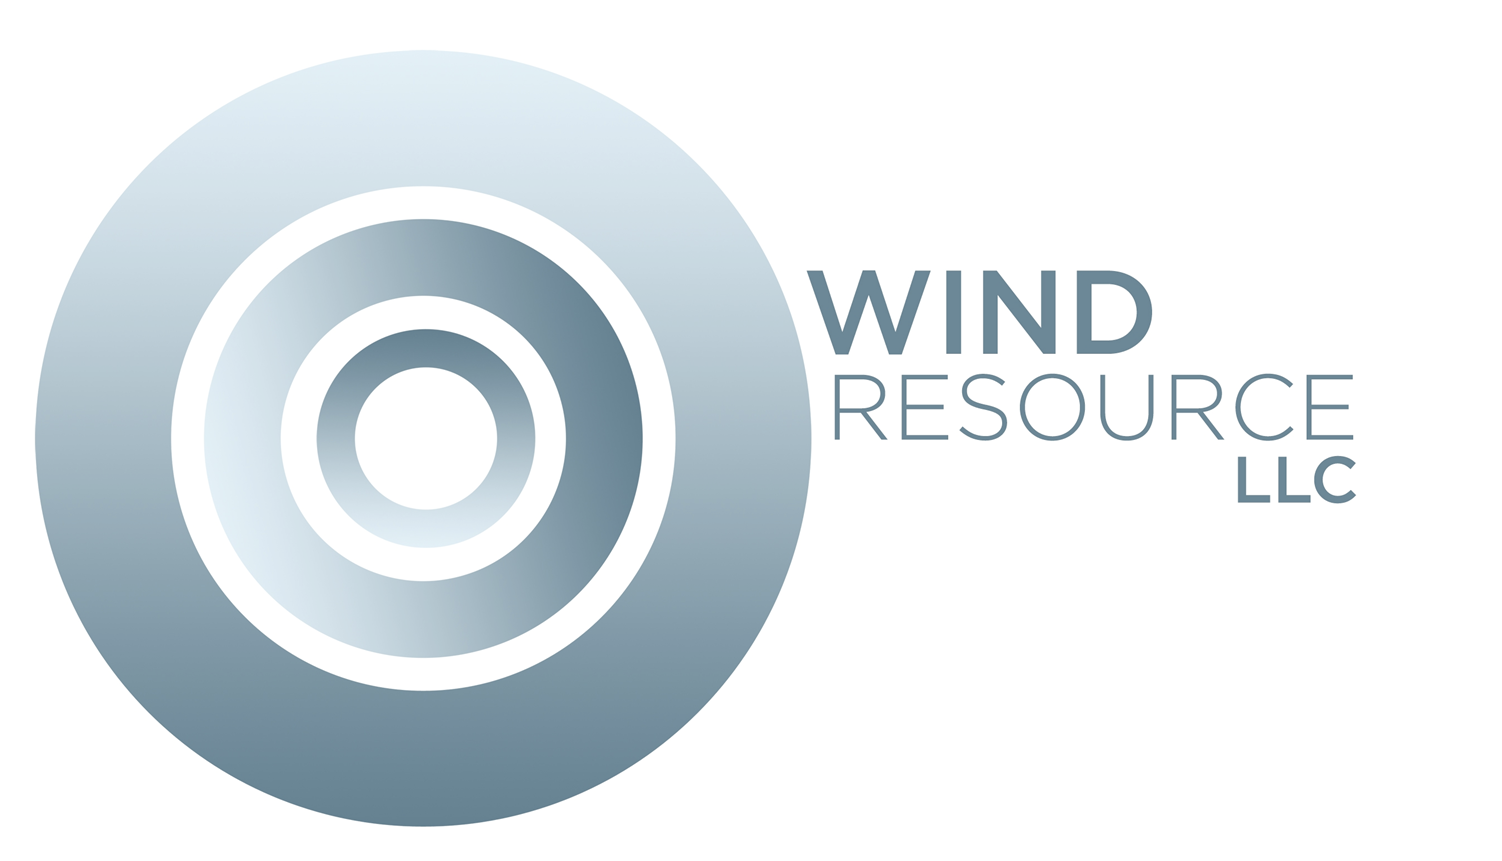 Wind energy market research